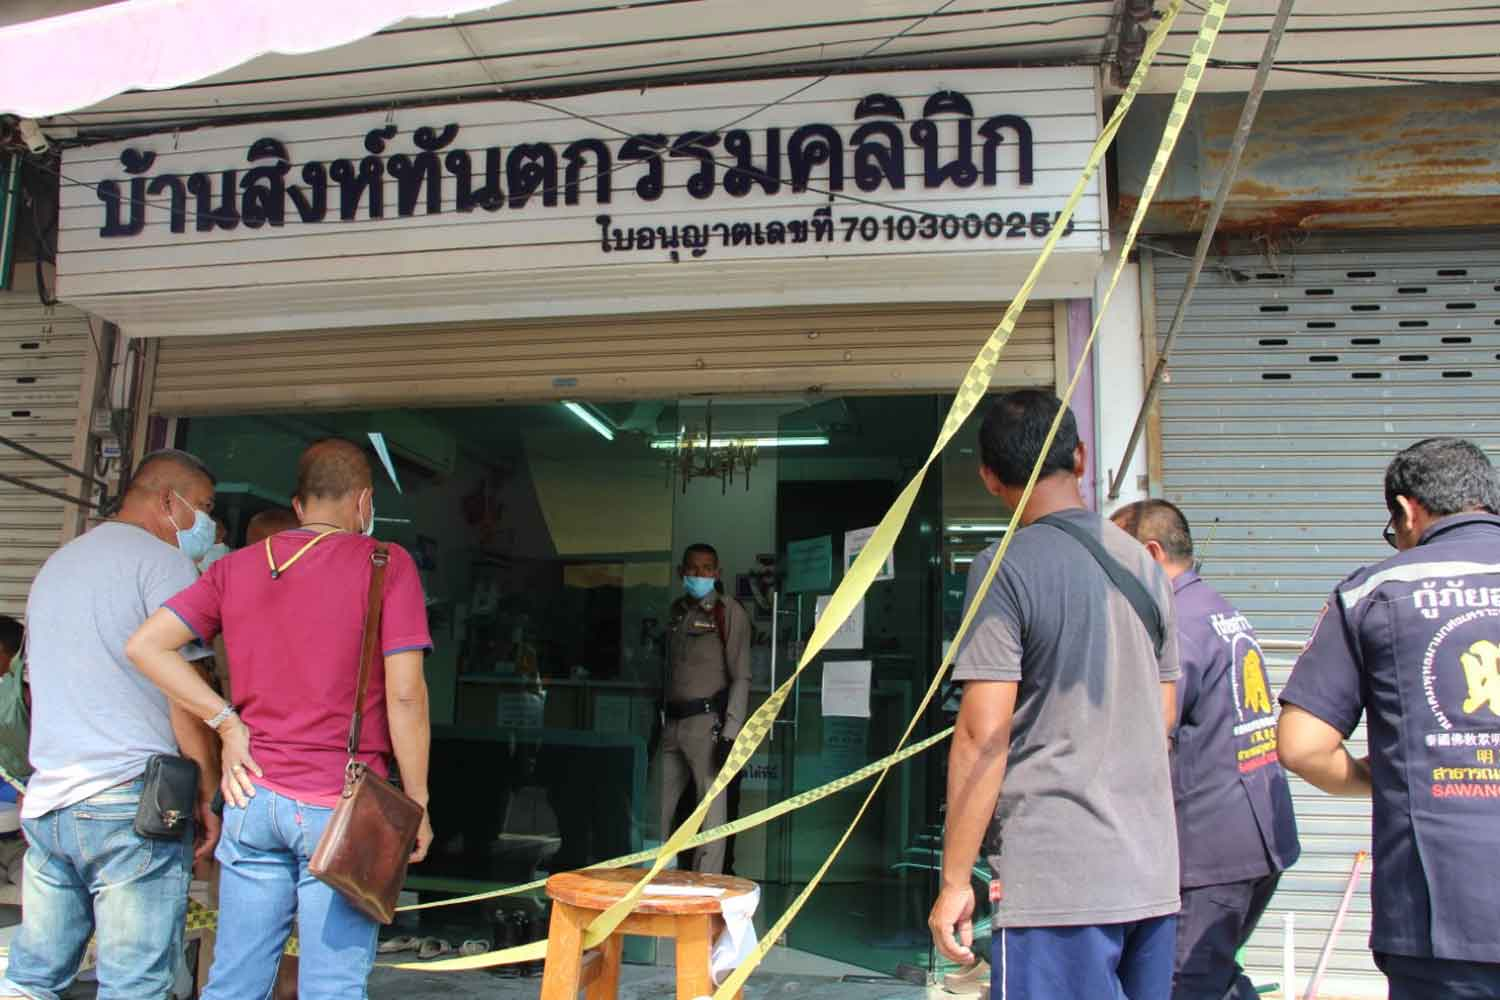 The Ban Sing Tantakam dental clinic in Photharam district, Ratchaburi province, is cordoned off as police examine the murder scene on the second floor, where a man stabbed his estranged lover to death, on Tuesday. (Photo: Saichol Srinuanchan)